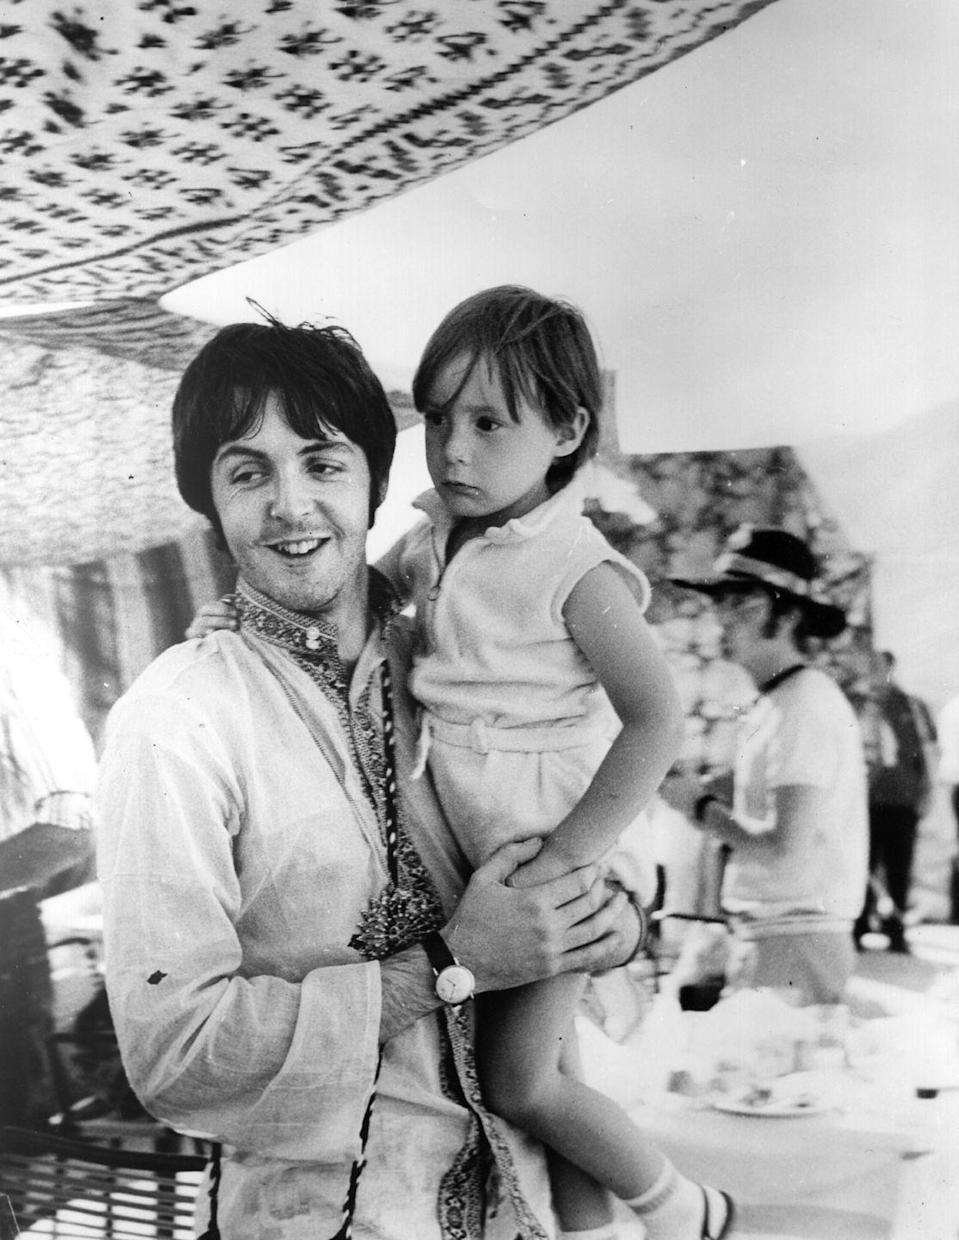 <p>Paul McCartney hangs out with his bandmate's four-year-old son while the band was on a break from tour in Greece. A few years later in 1969, Julian's father, John Lennon, would marry Yoko Ono. </p>